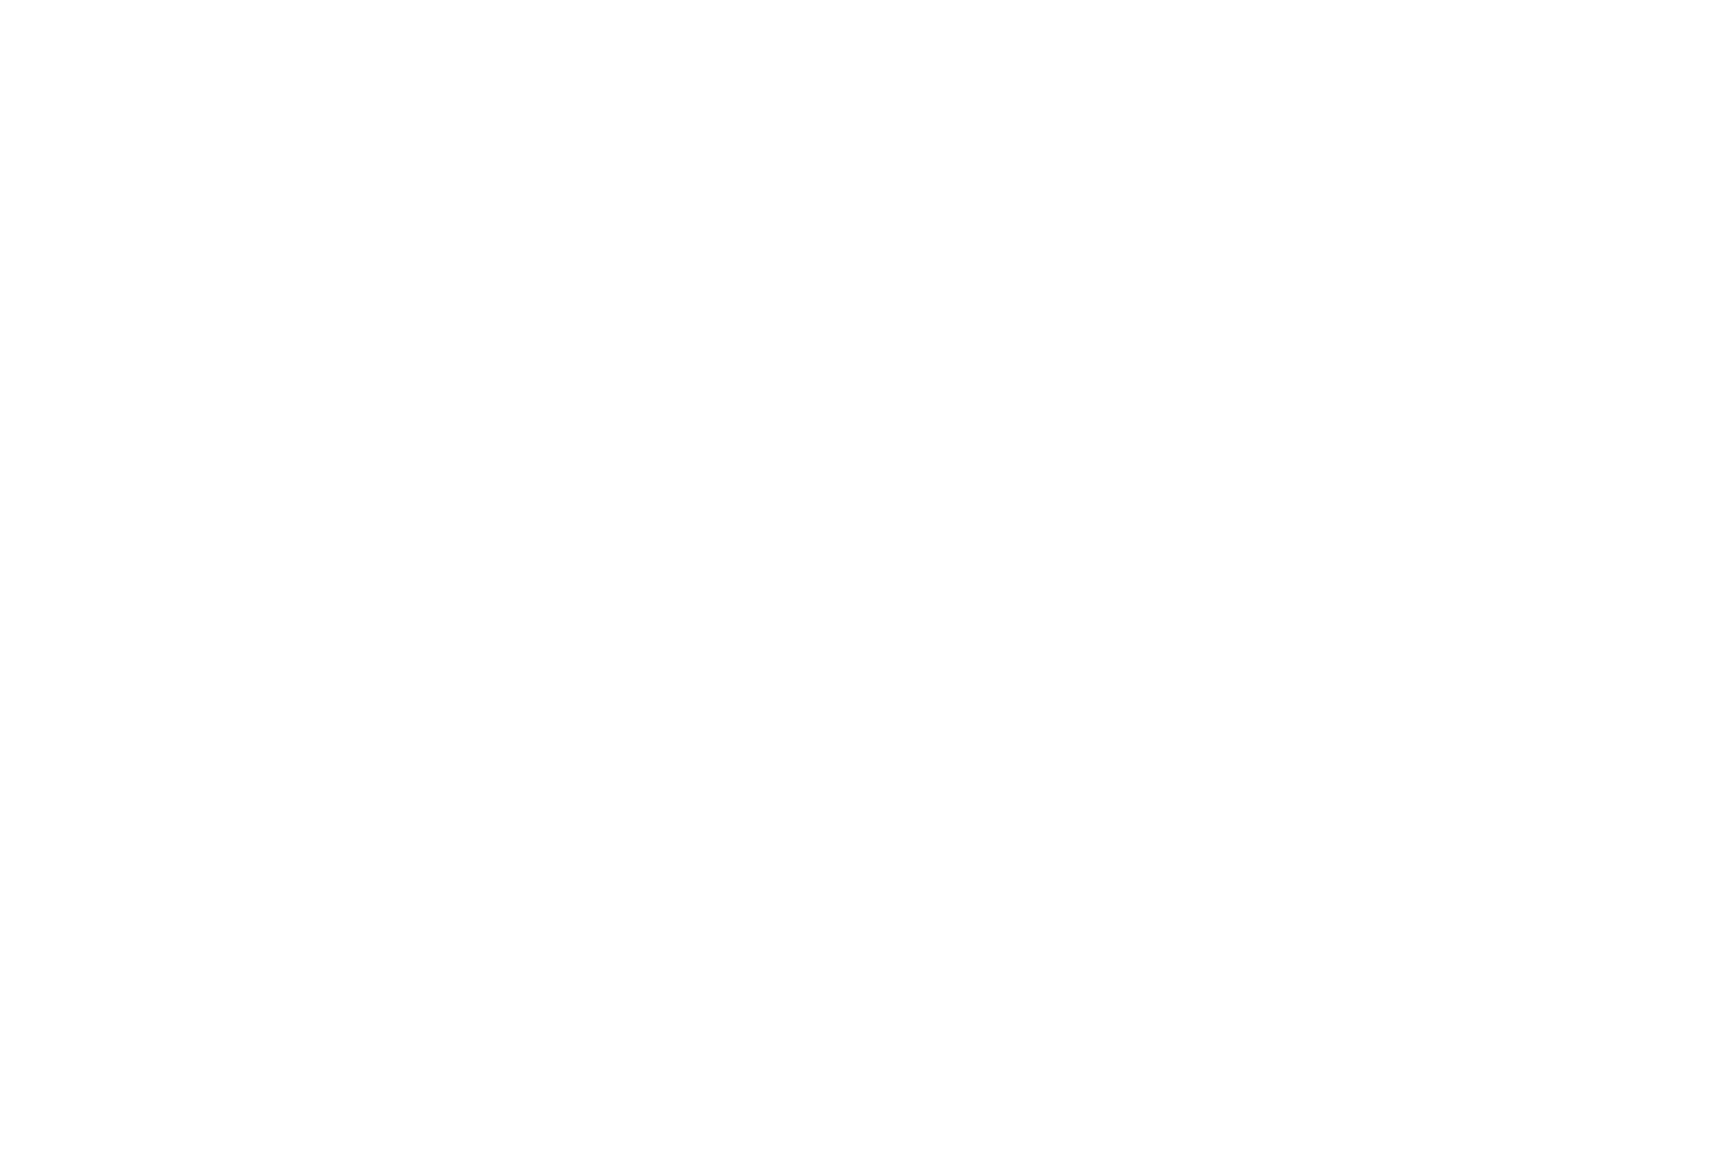 OFFICIAL SELECTION - The West Virginia Mountaineer Short Film Festival - 2018.png